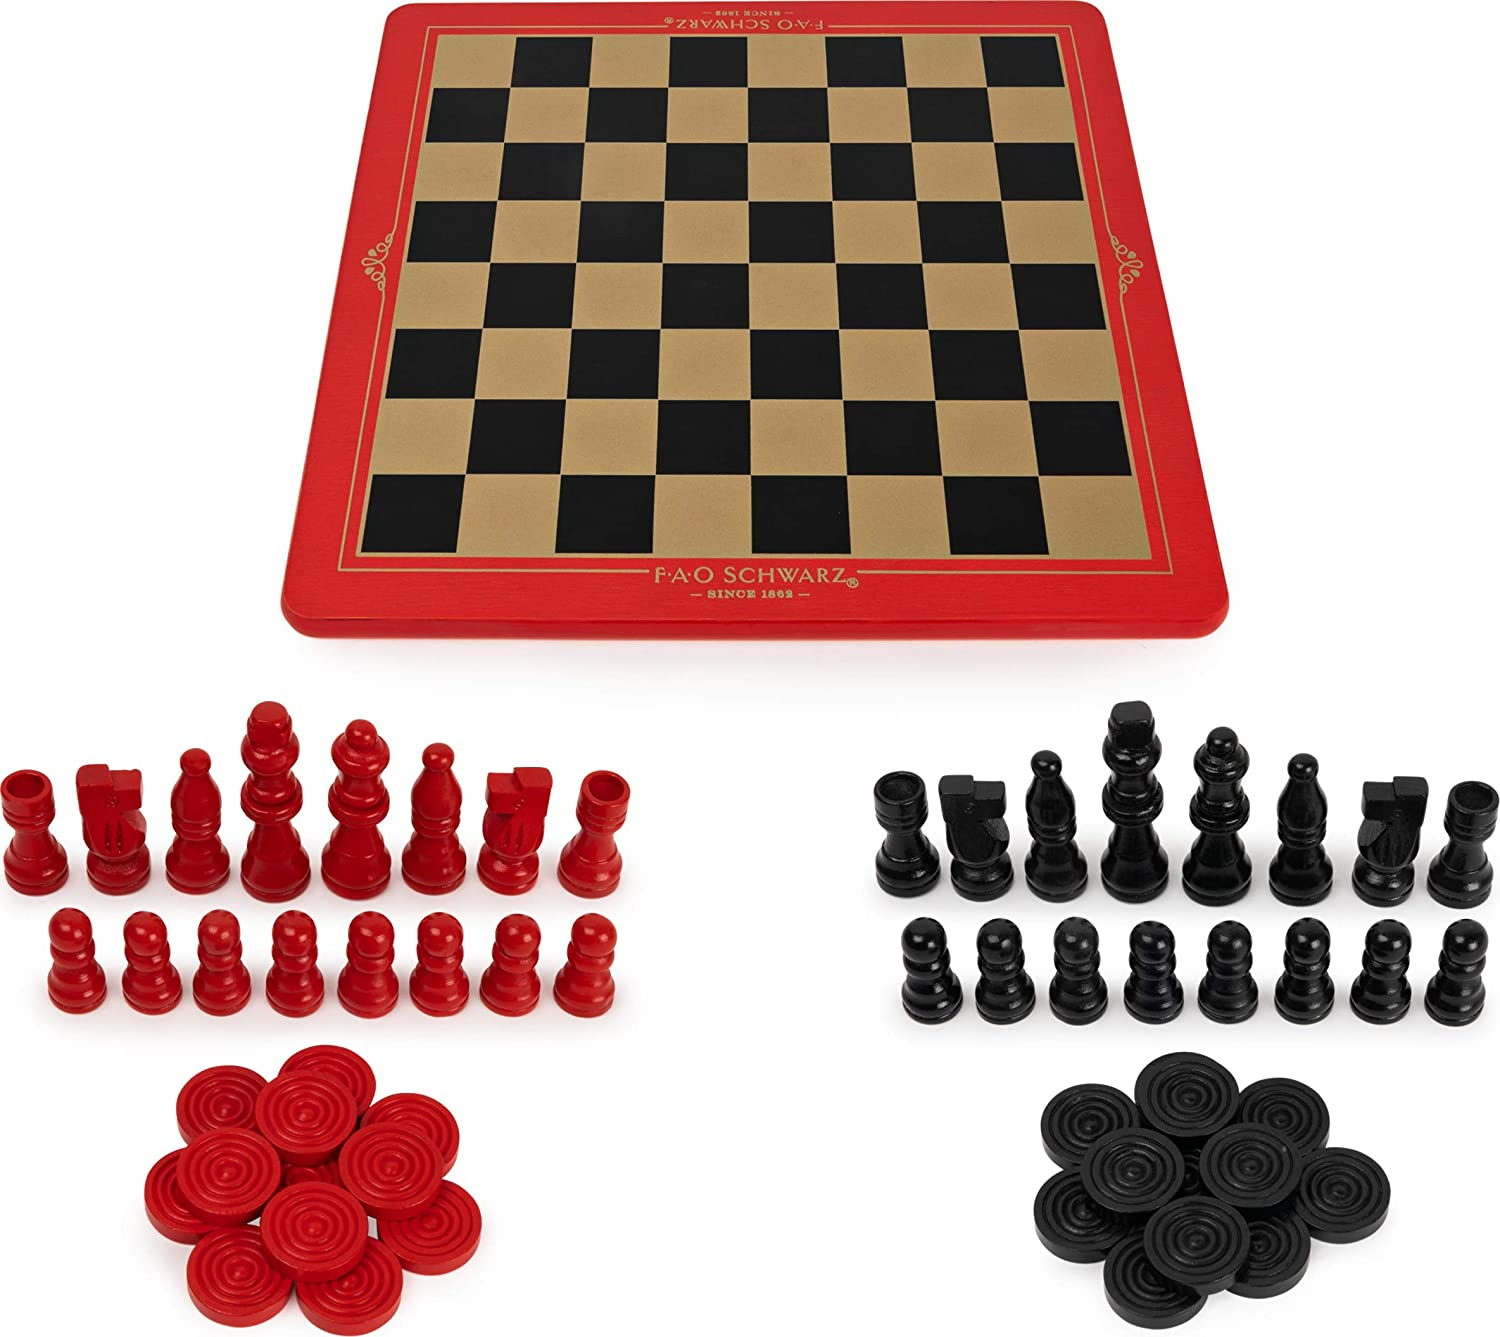 Wooden Chess, Checkers & Tic-Tac-Toe Set